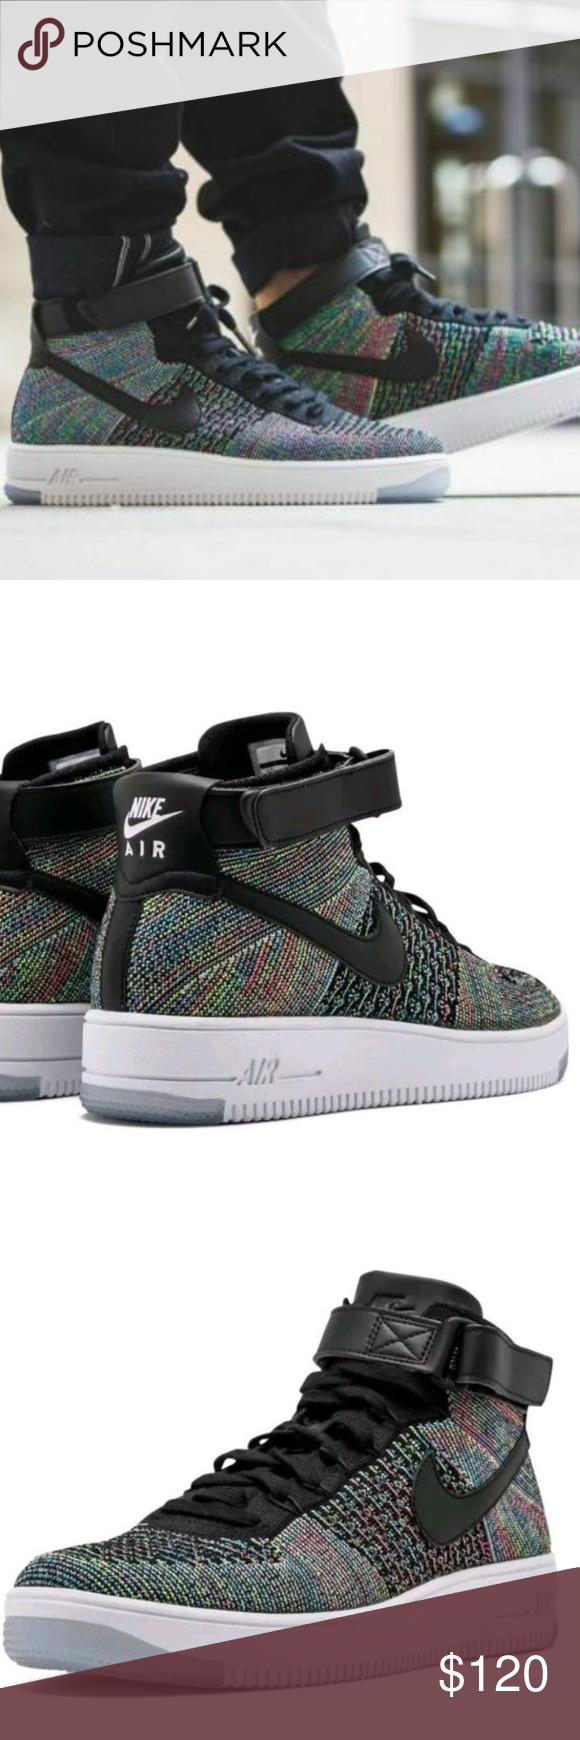 low priced f1602 457ff NEW - NIKE Air Force 1 Ultra Flyknit Mid NEW - NIKE Air Force 1 Ultra  Flyknit Mid - Multi-color 2.0- 817420 601 - Sz 11.5 Nike Shoes Athletic  Shoes